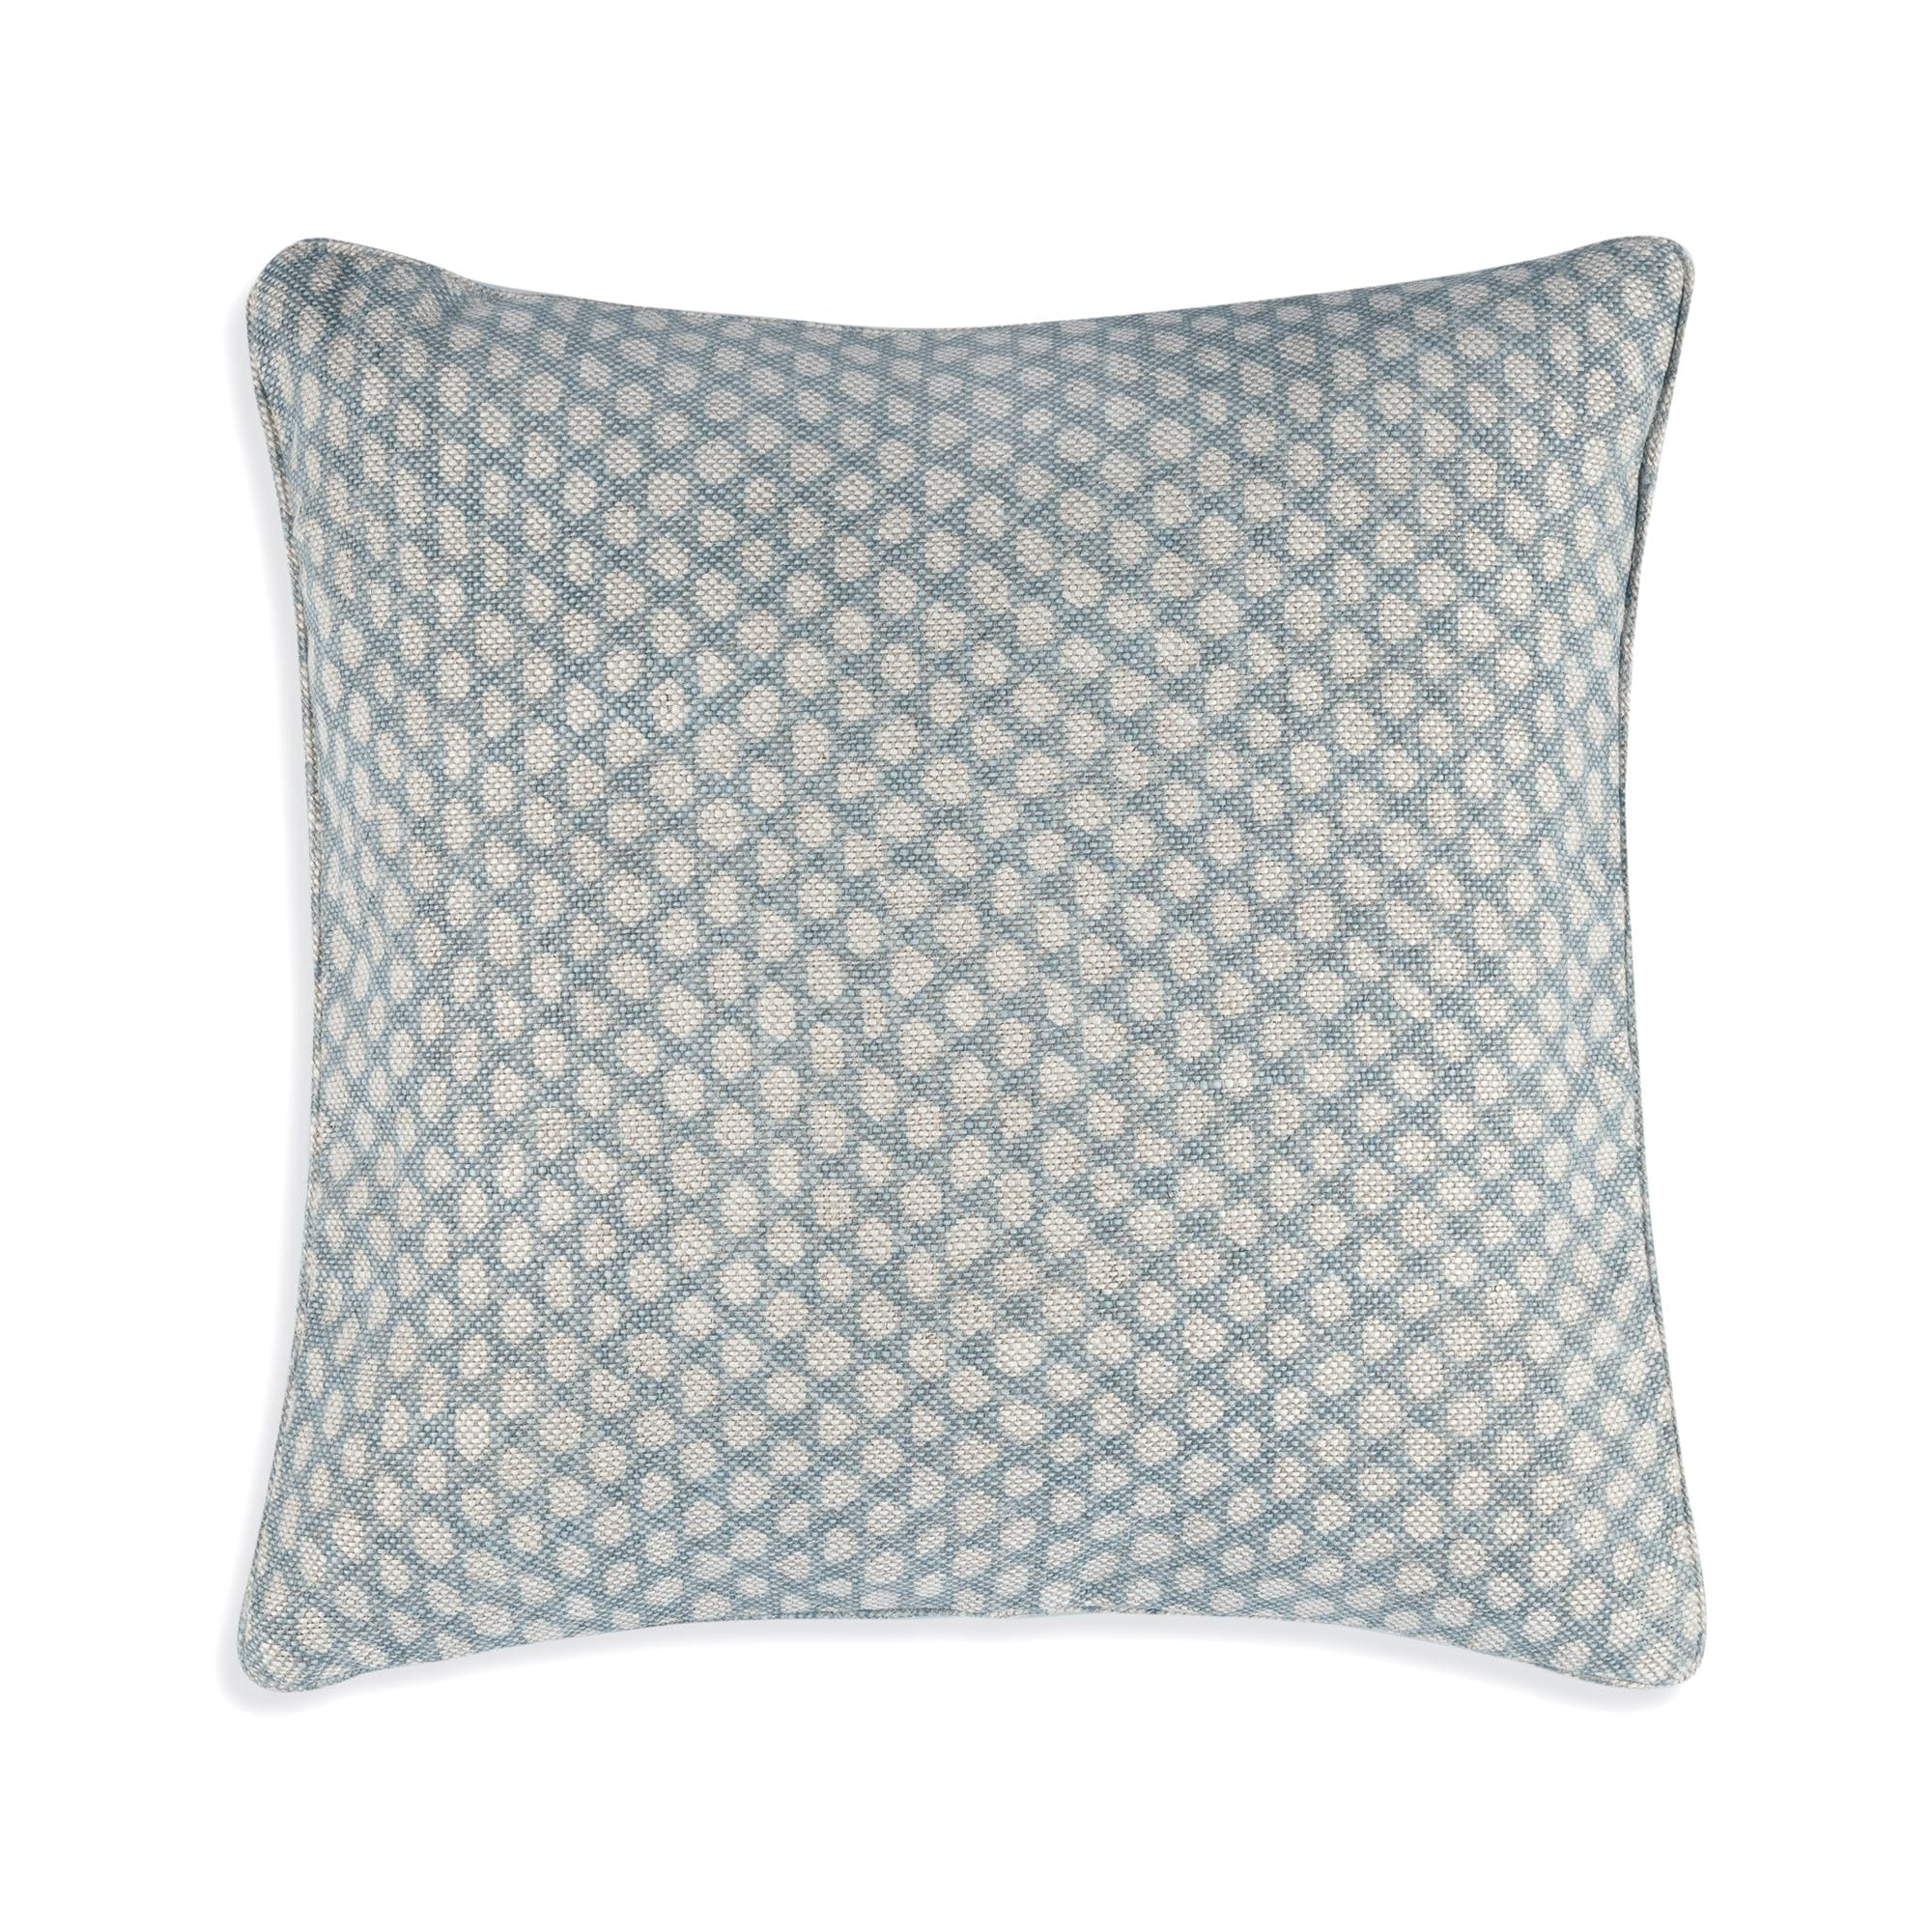 Fermoie Cushion in Light Blue Wicker